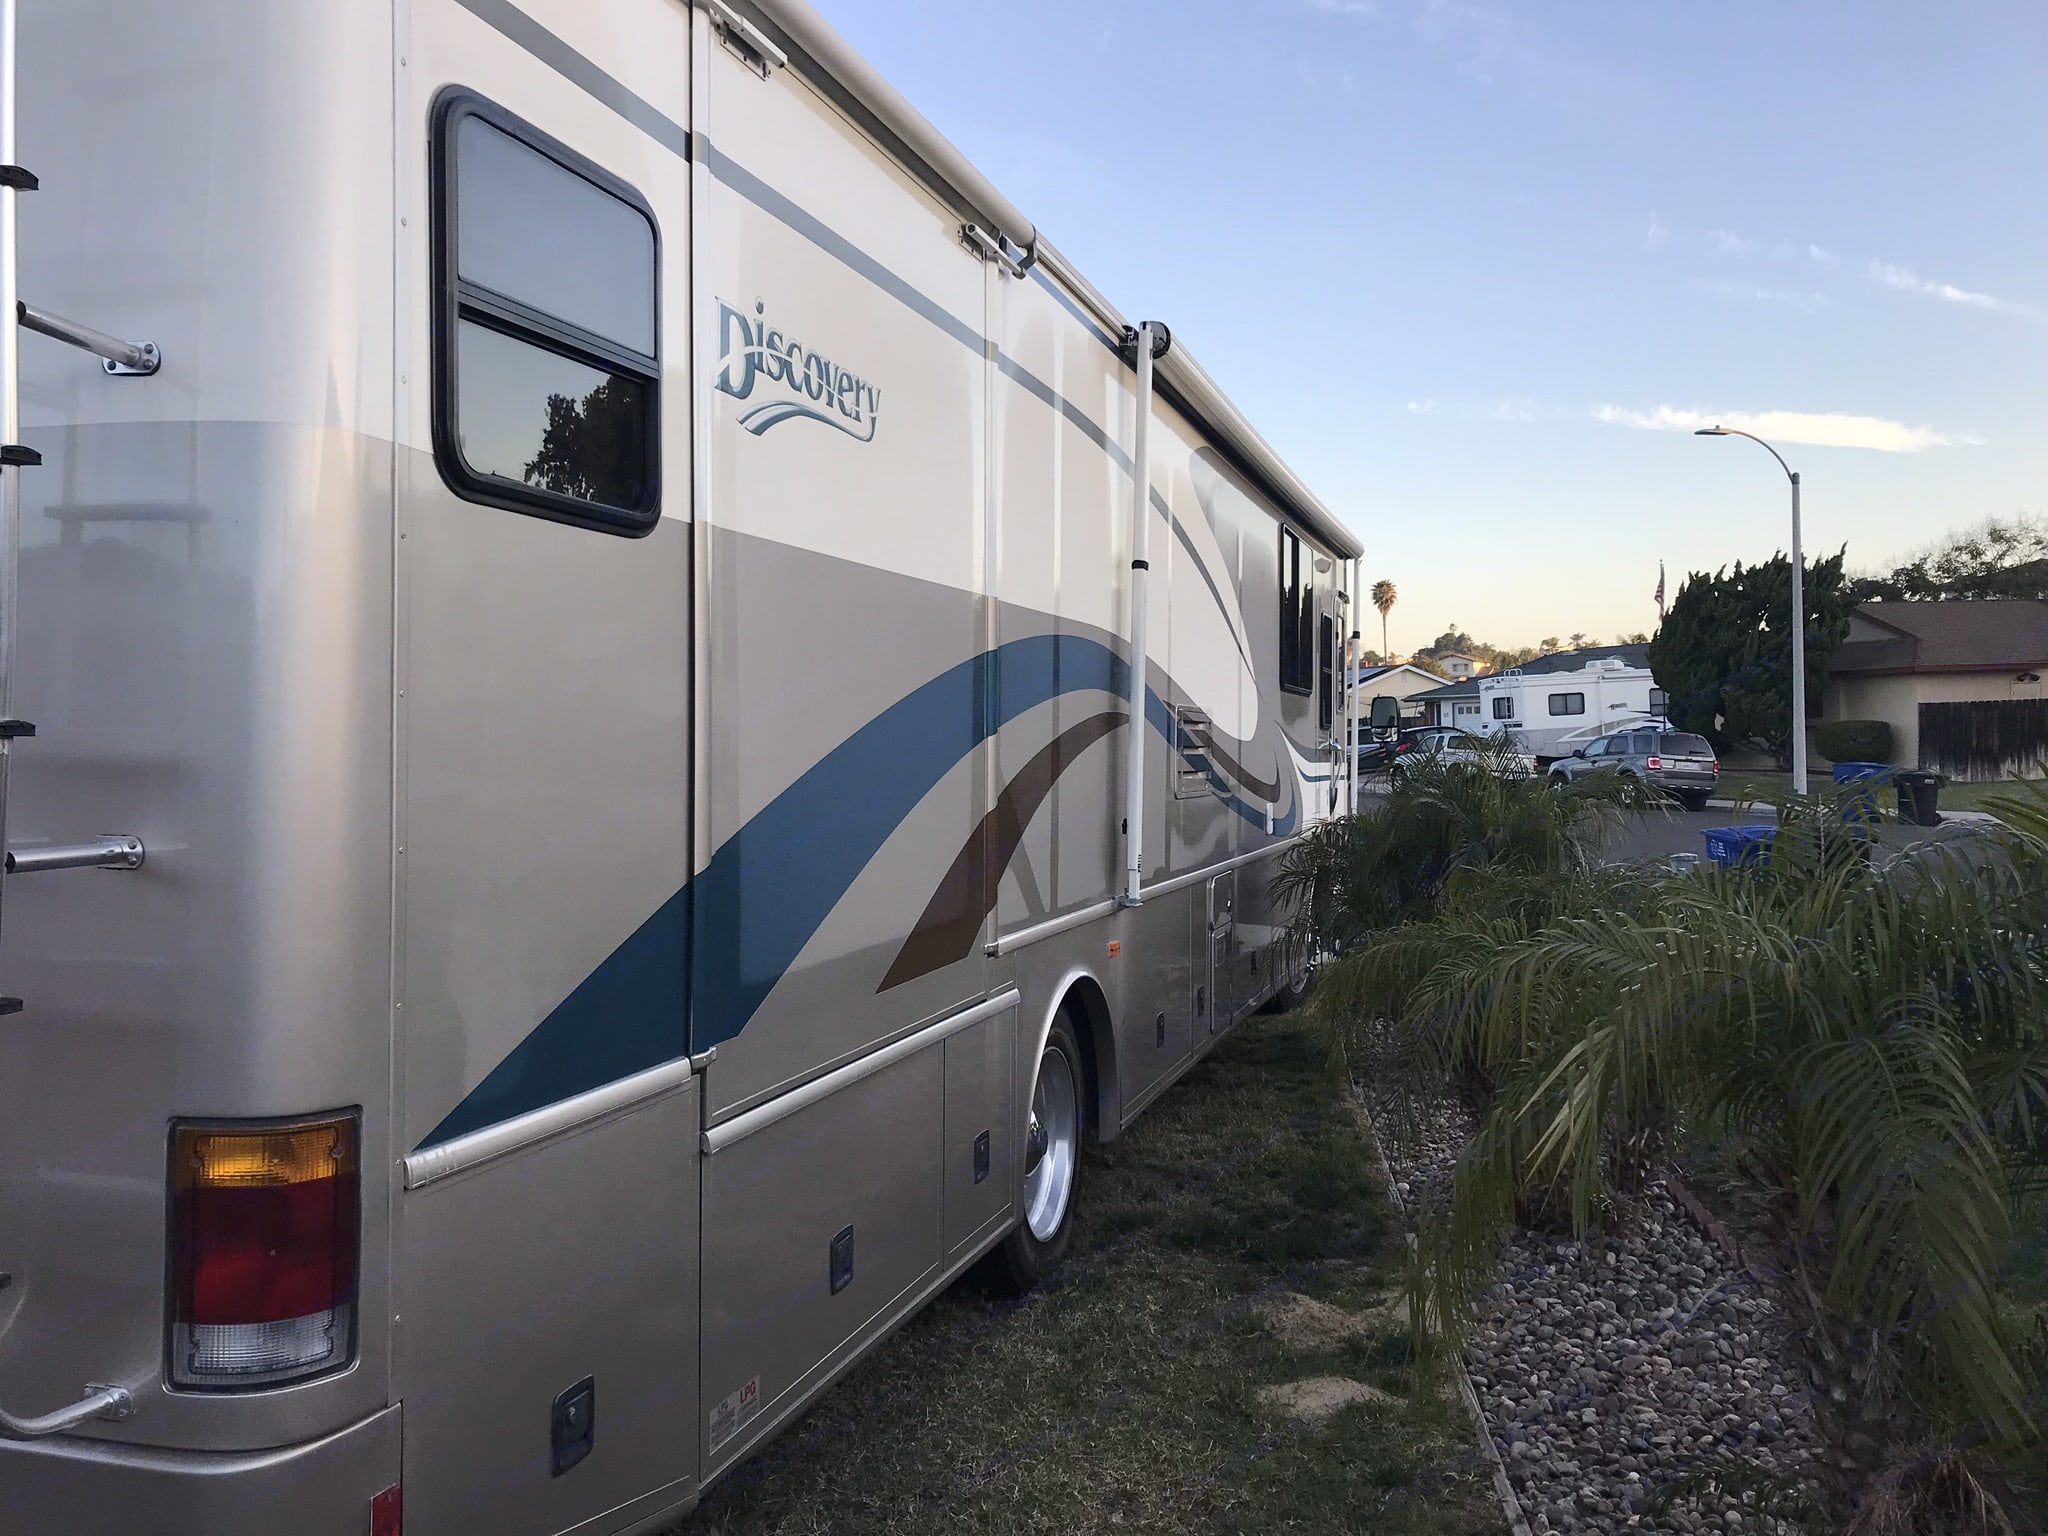 Fleetwood Discovery 2000